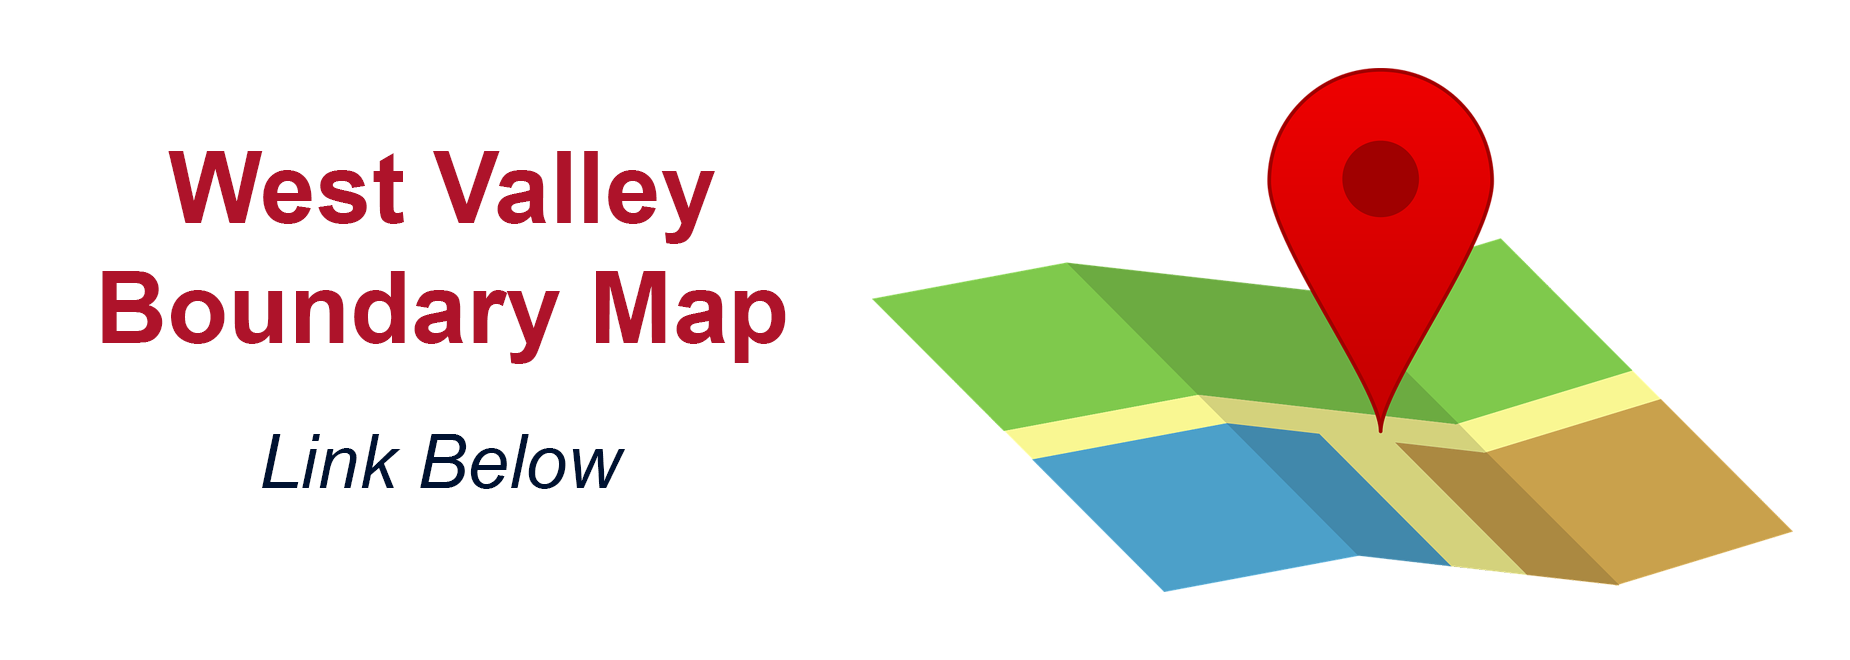 West Valley Boundary Map. Link Below.